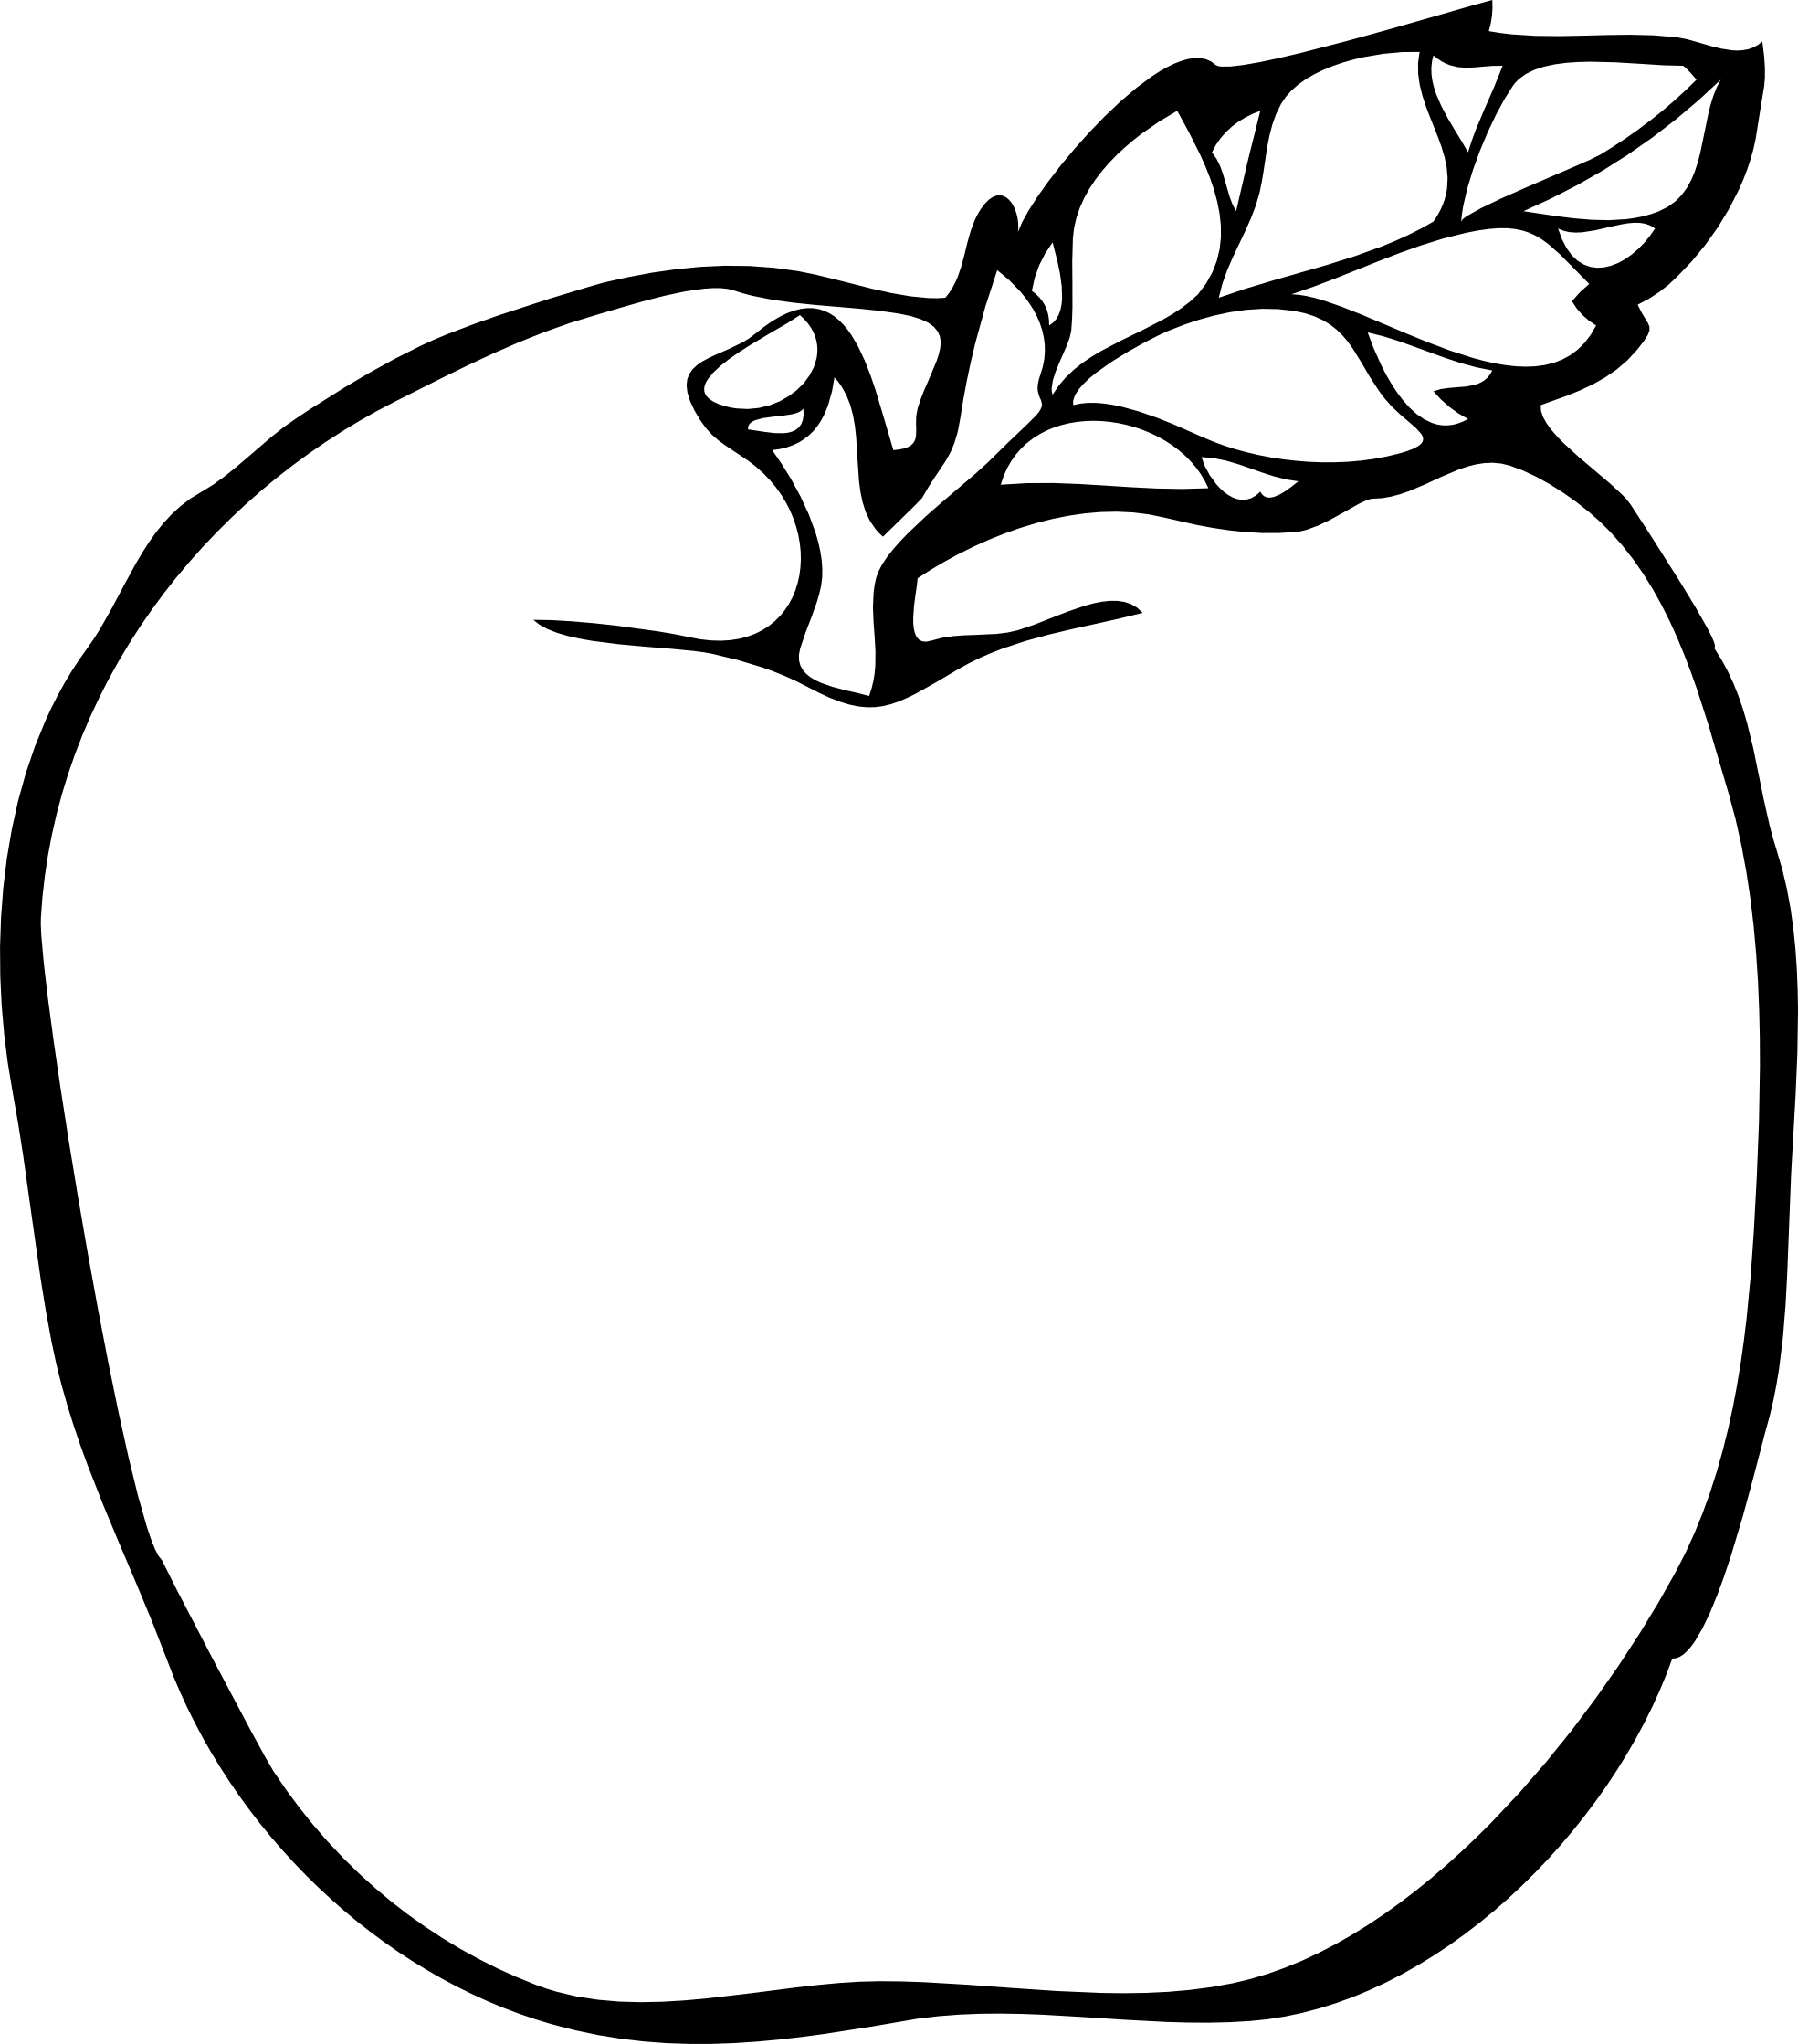 banner free Beet drawing easy. Image result for apple